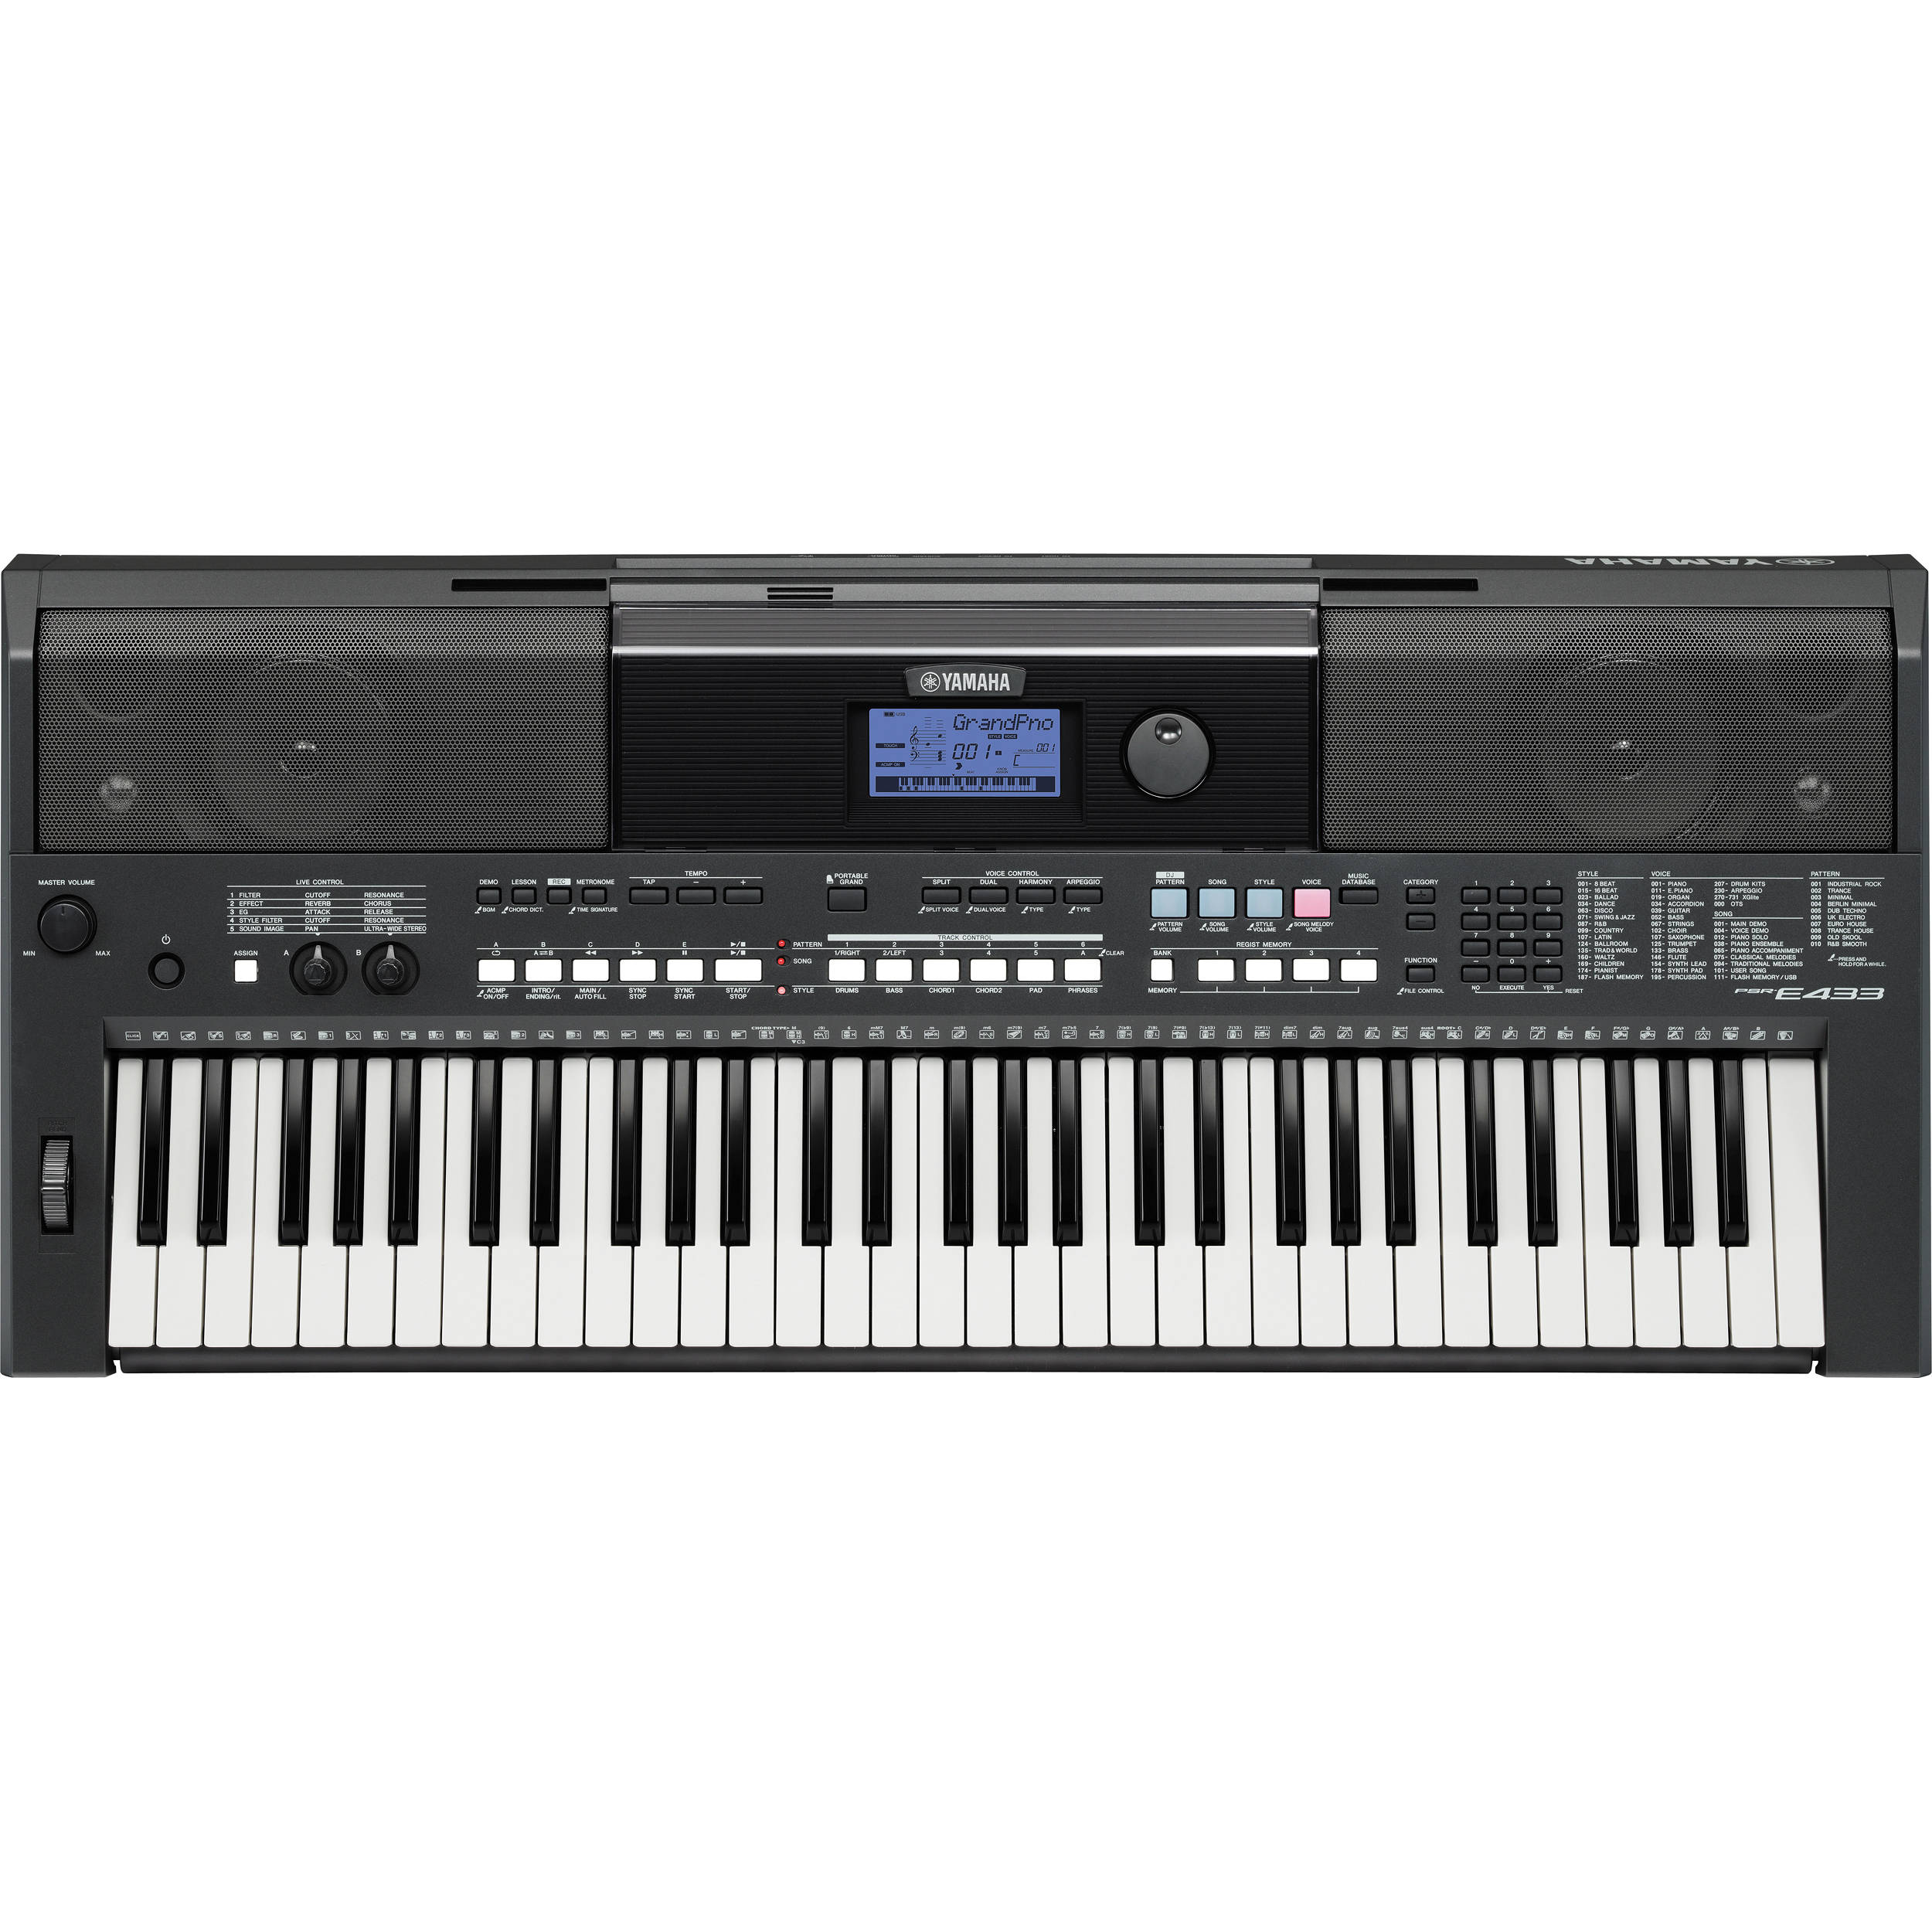 Yamaha PSR-E433 61-Key Portable Keyboard PSRE433 B&H Photo Video